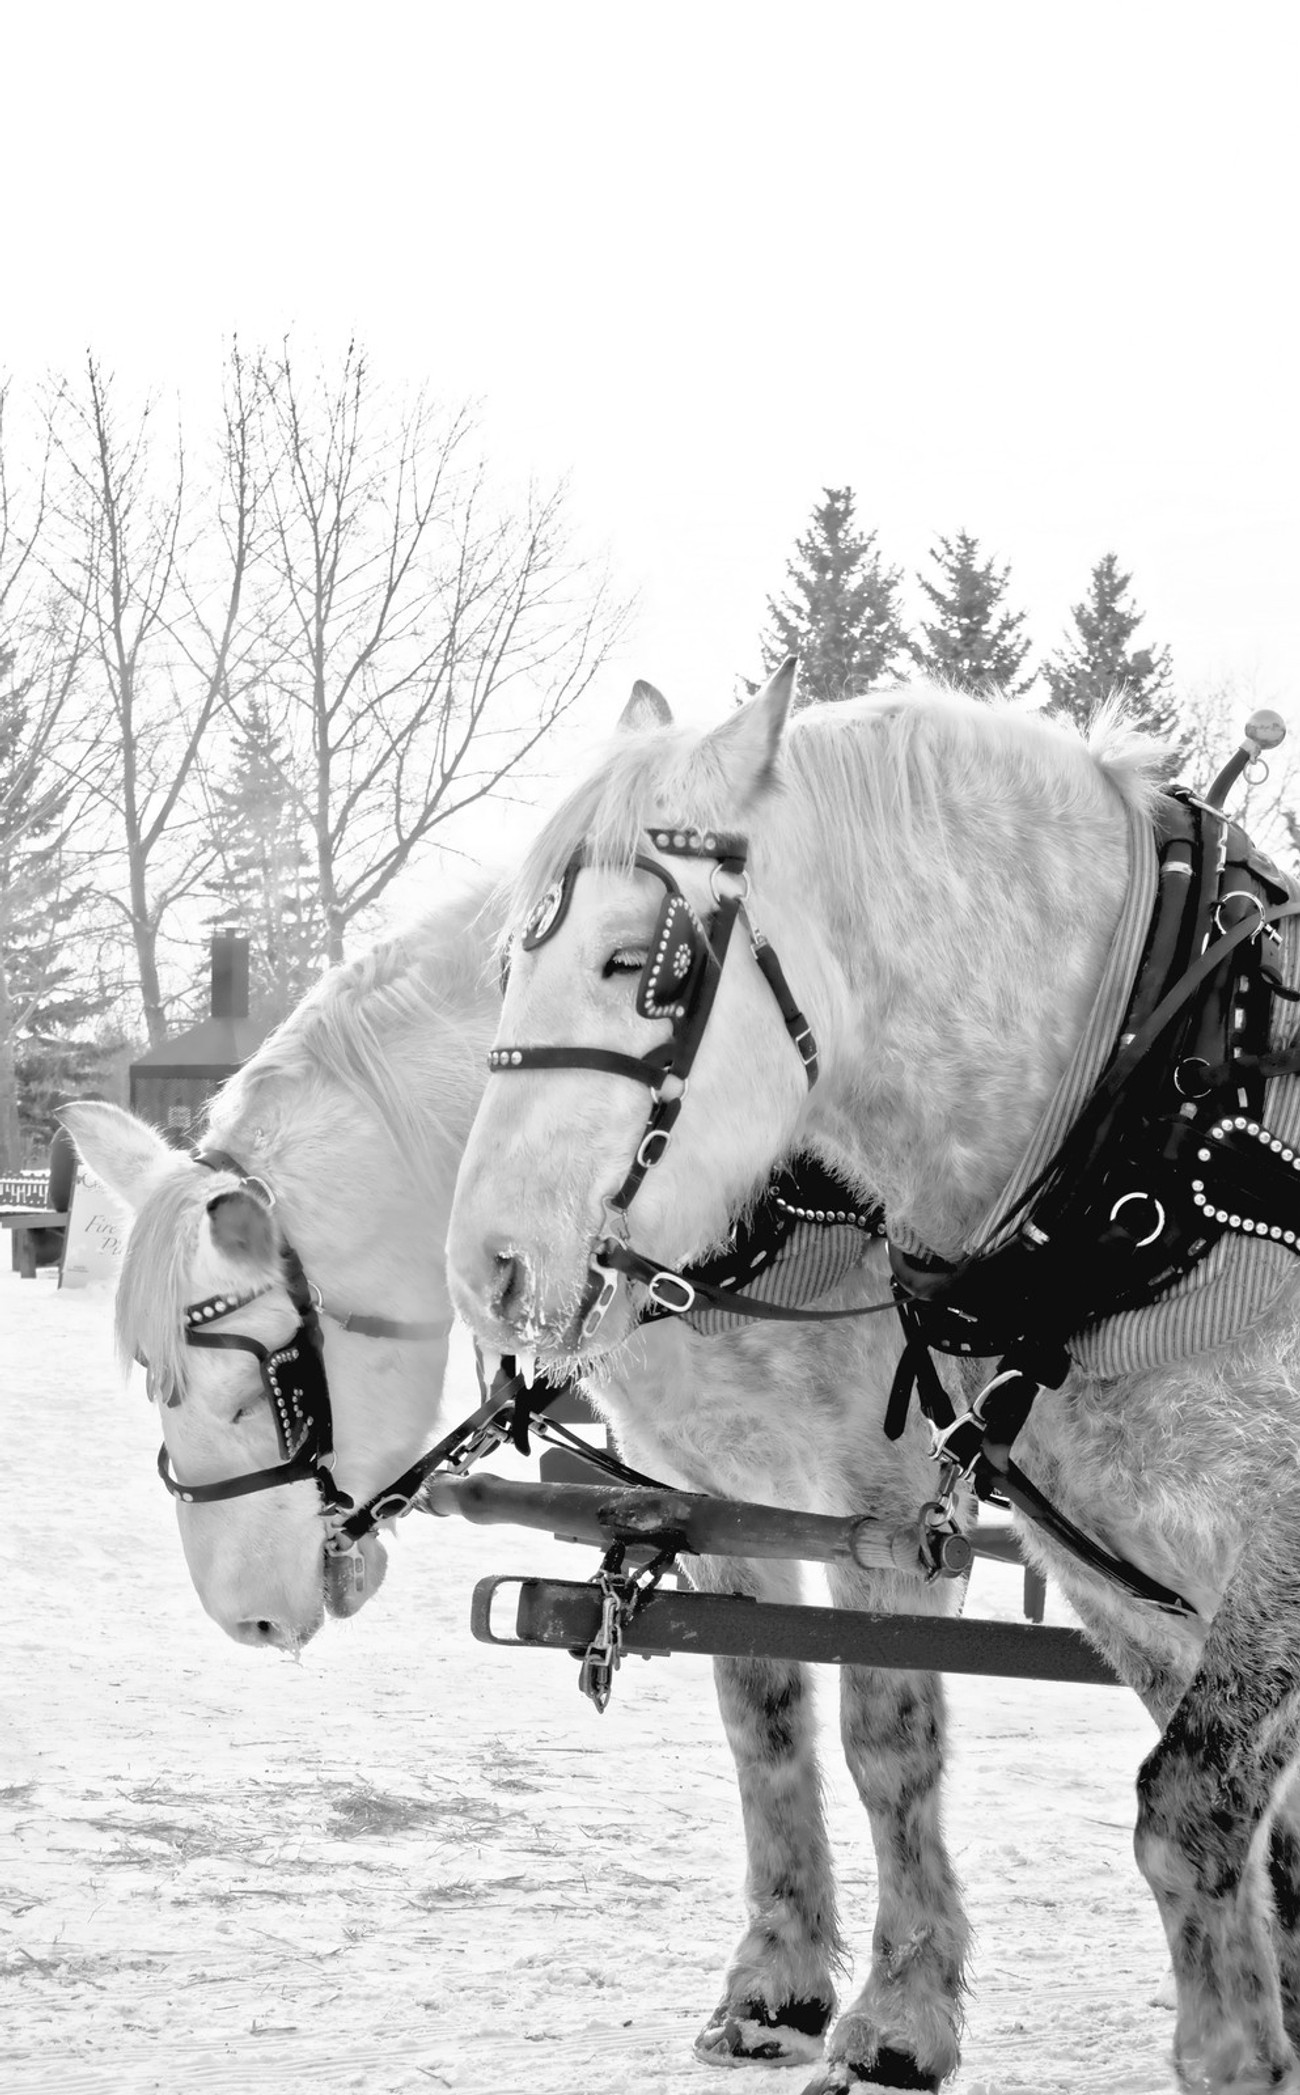 Horse Team Black and White Image